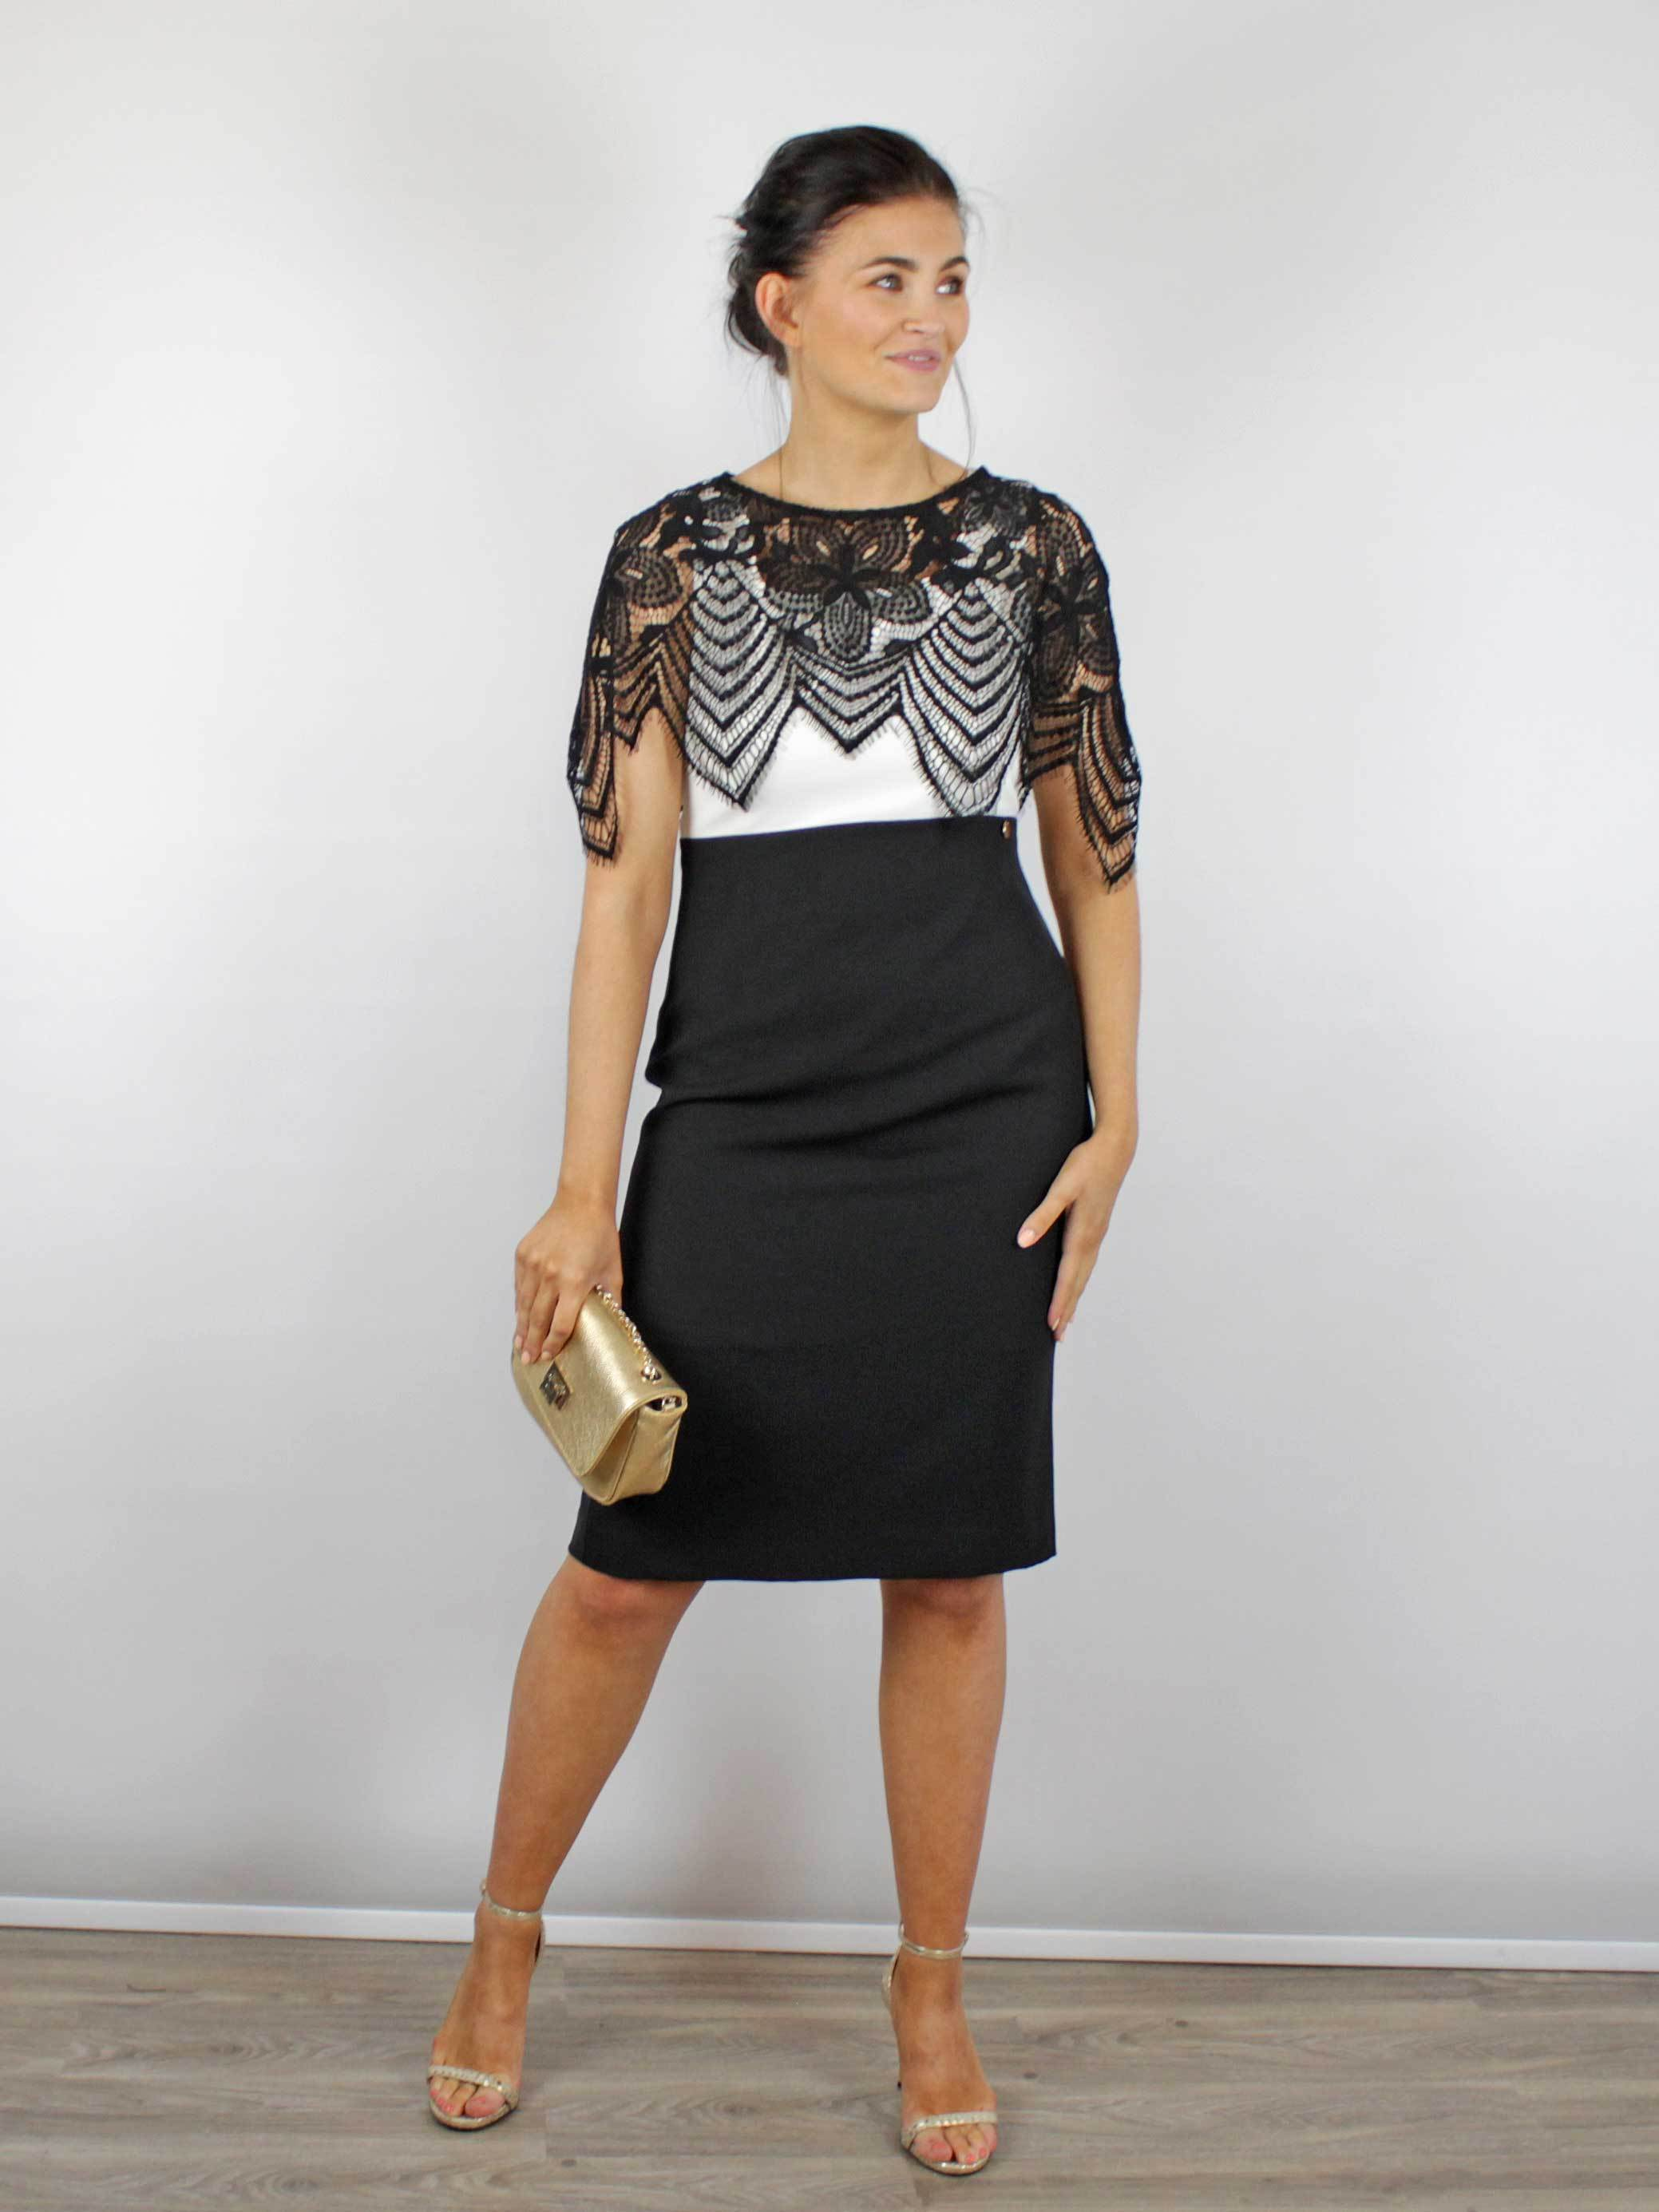 Kate Cooper Lace Overlay Dress Black & Cream